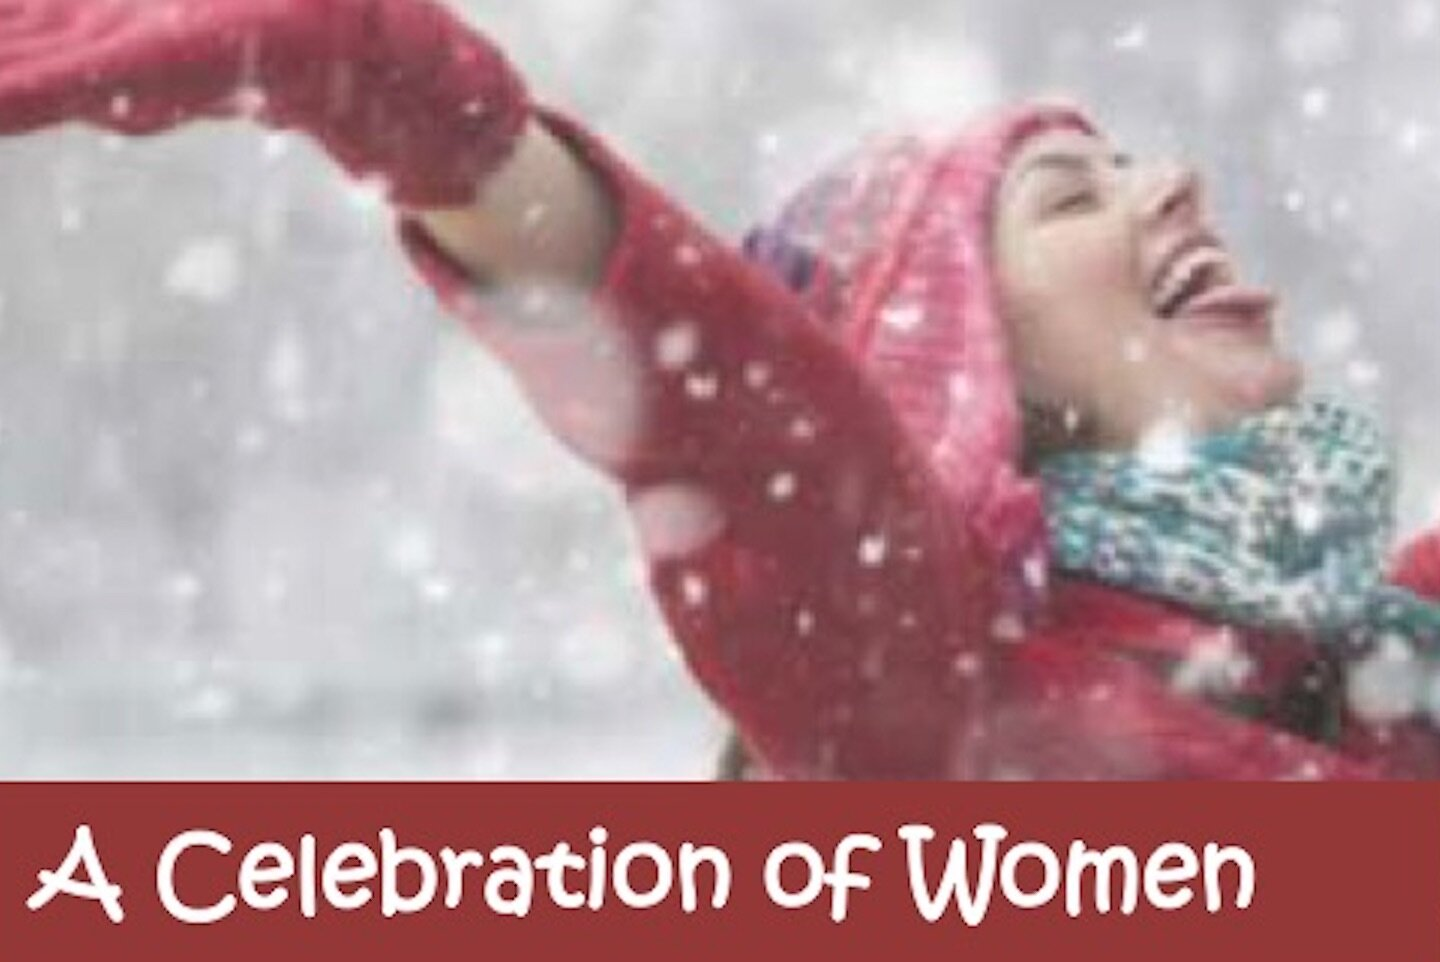 A Celebration of Women - December 6, 7:00 PM, Los AlamosSaturday, December 7, 4:00 PM, Santa Fe